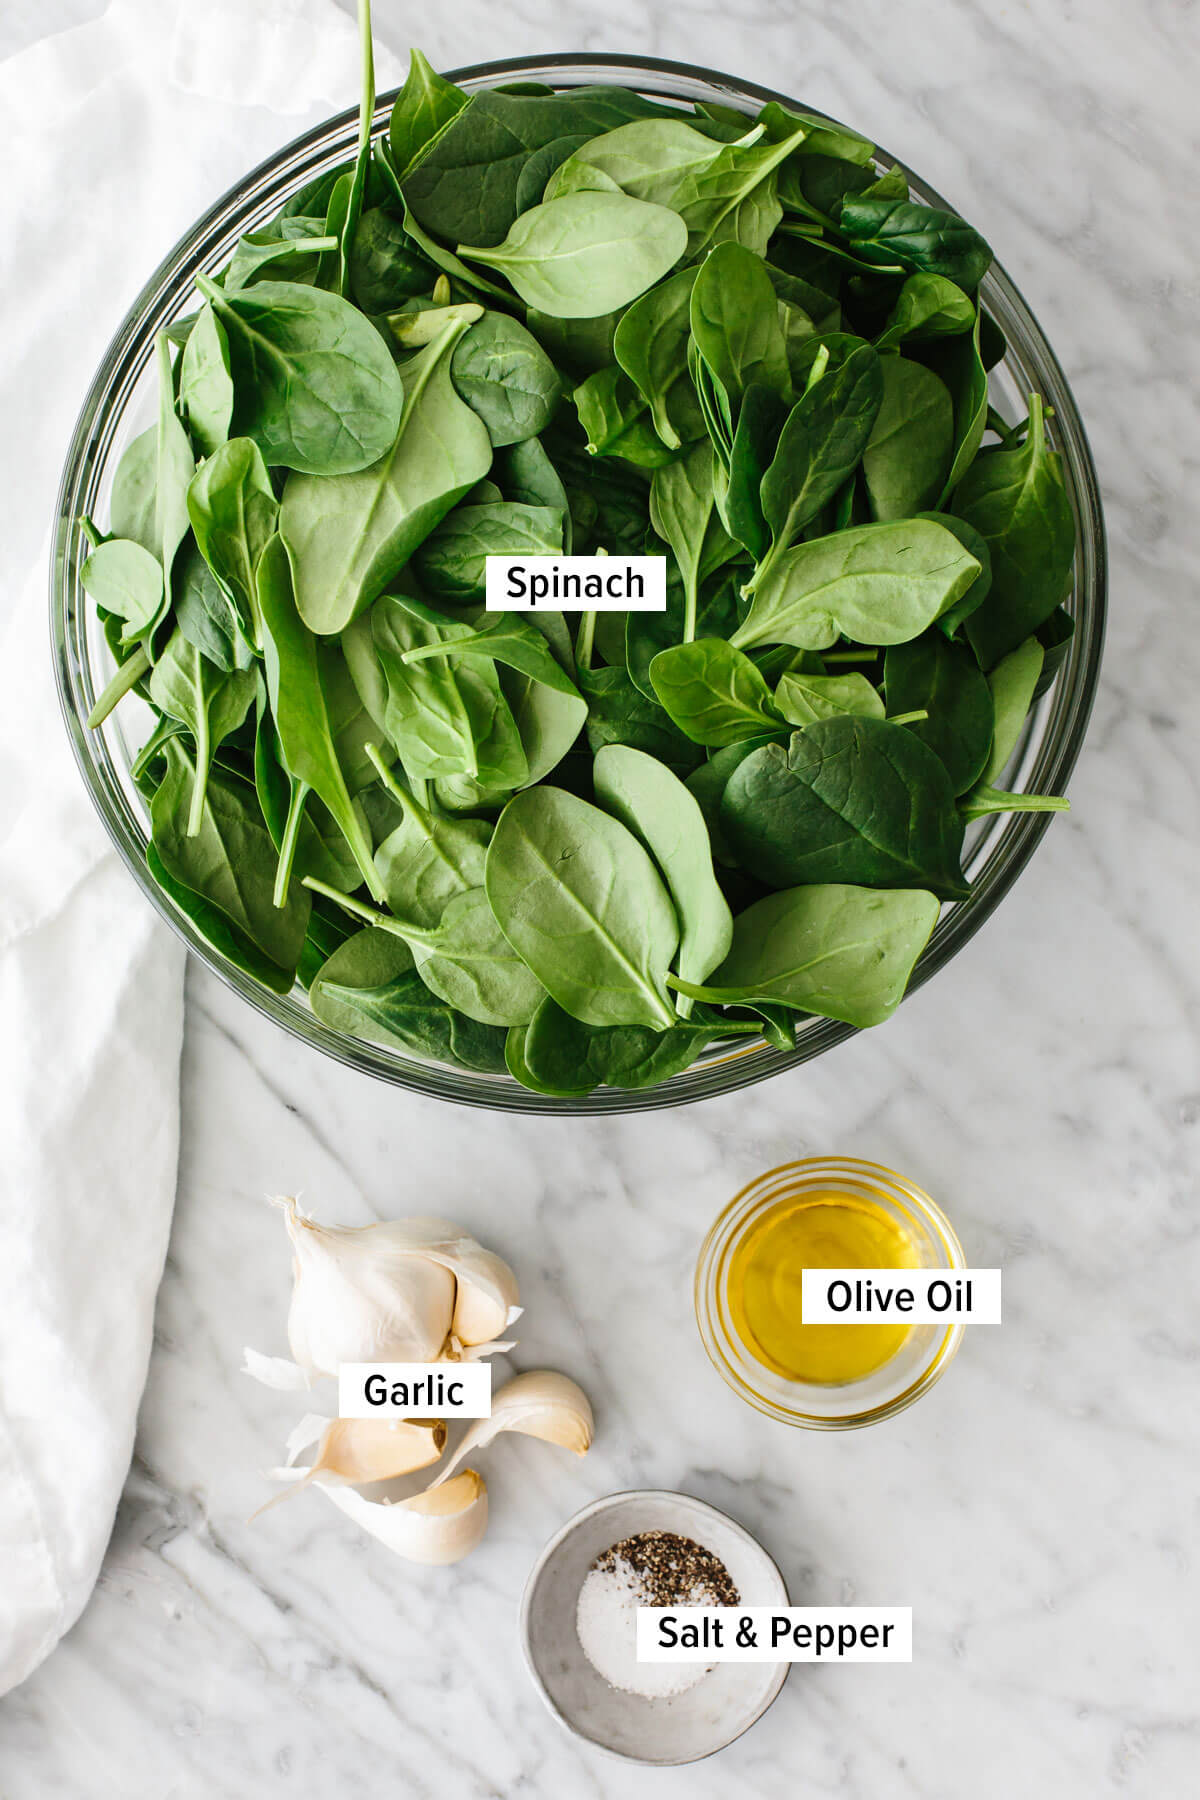 Ingredients for garlic sauteed spinach.